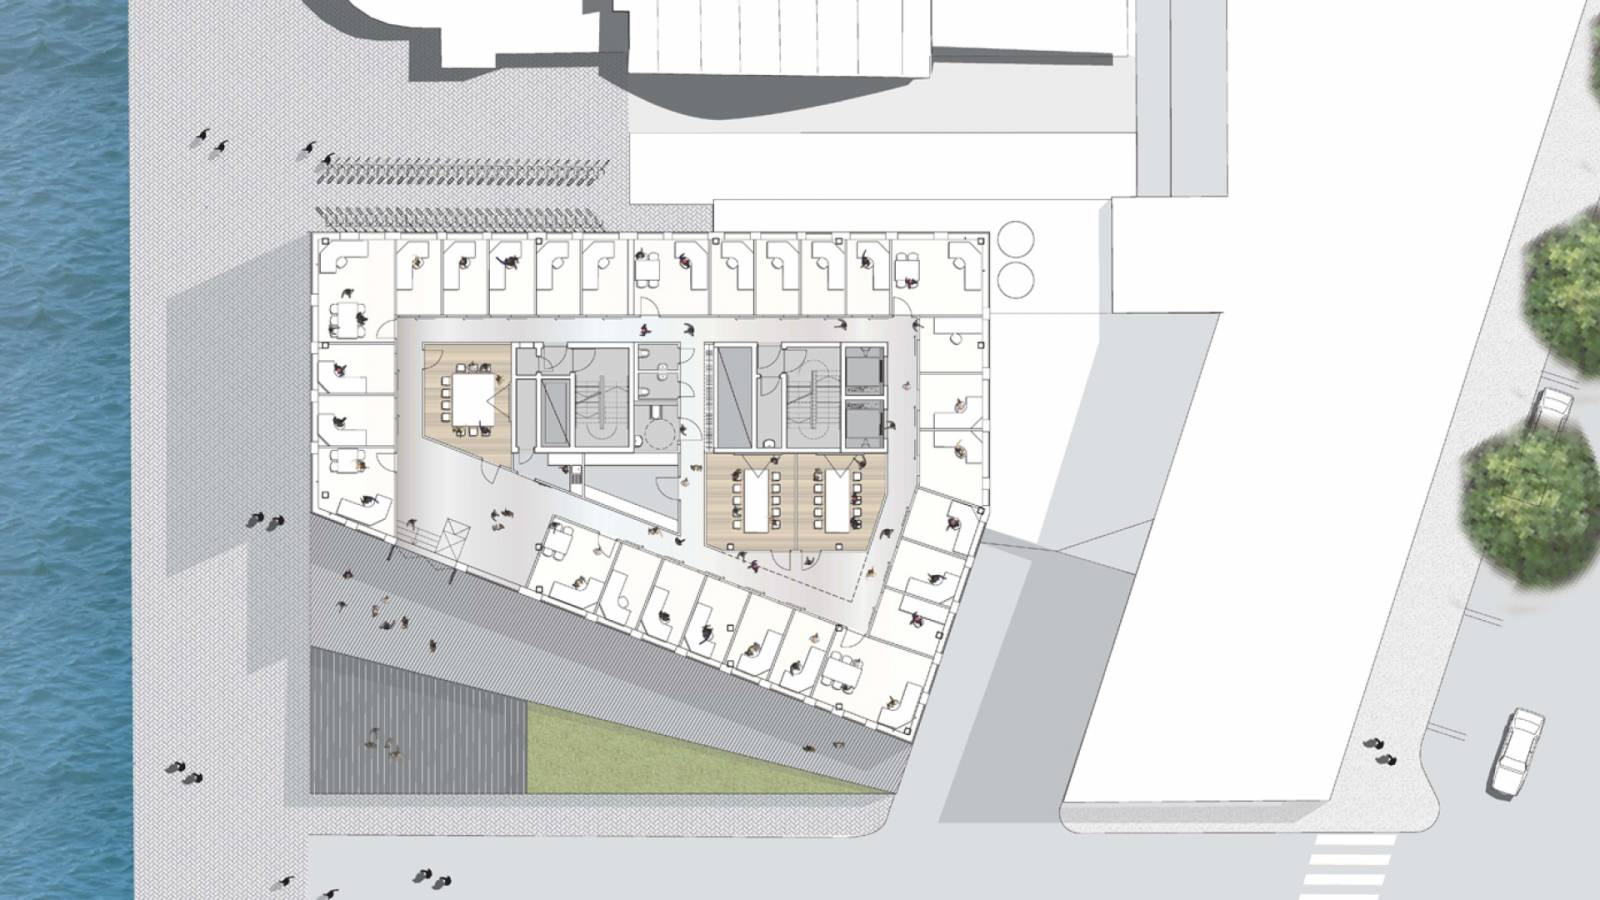 FLOOR PLAN OFFICE - Aviation Authority HQ - SPOL Architects